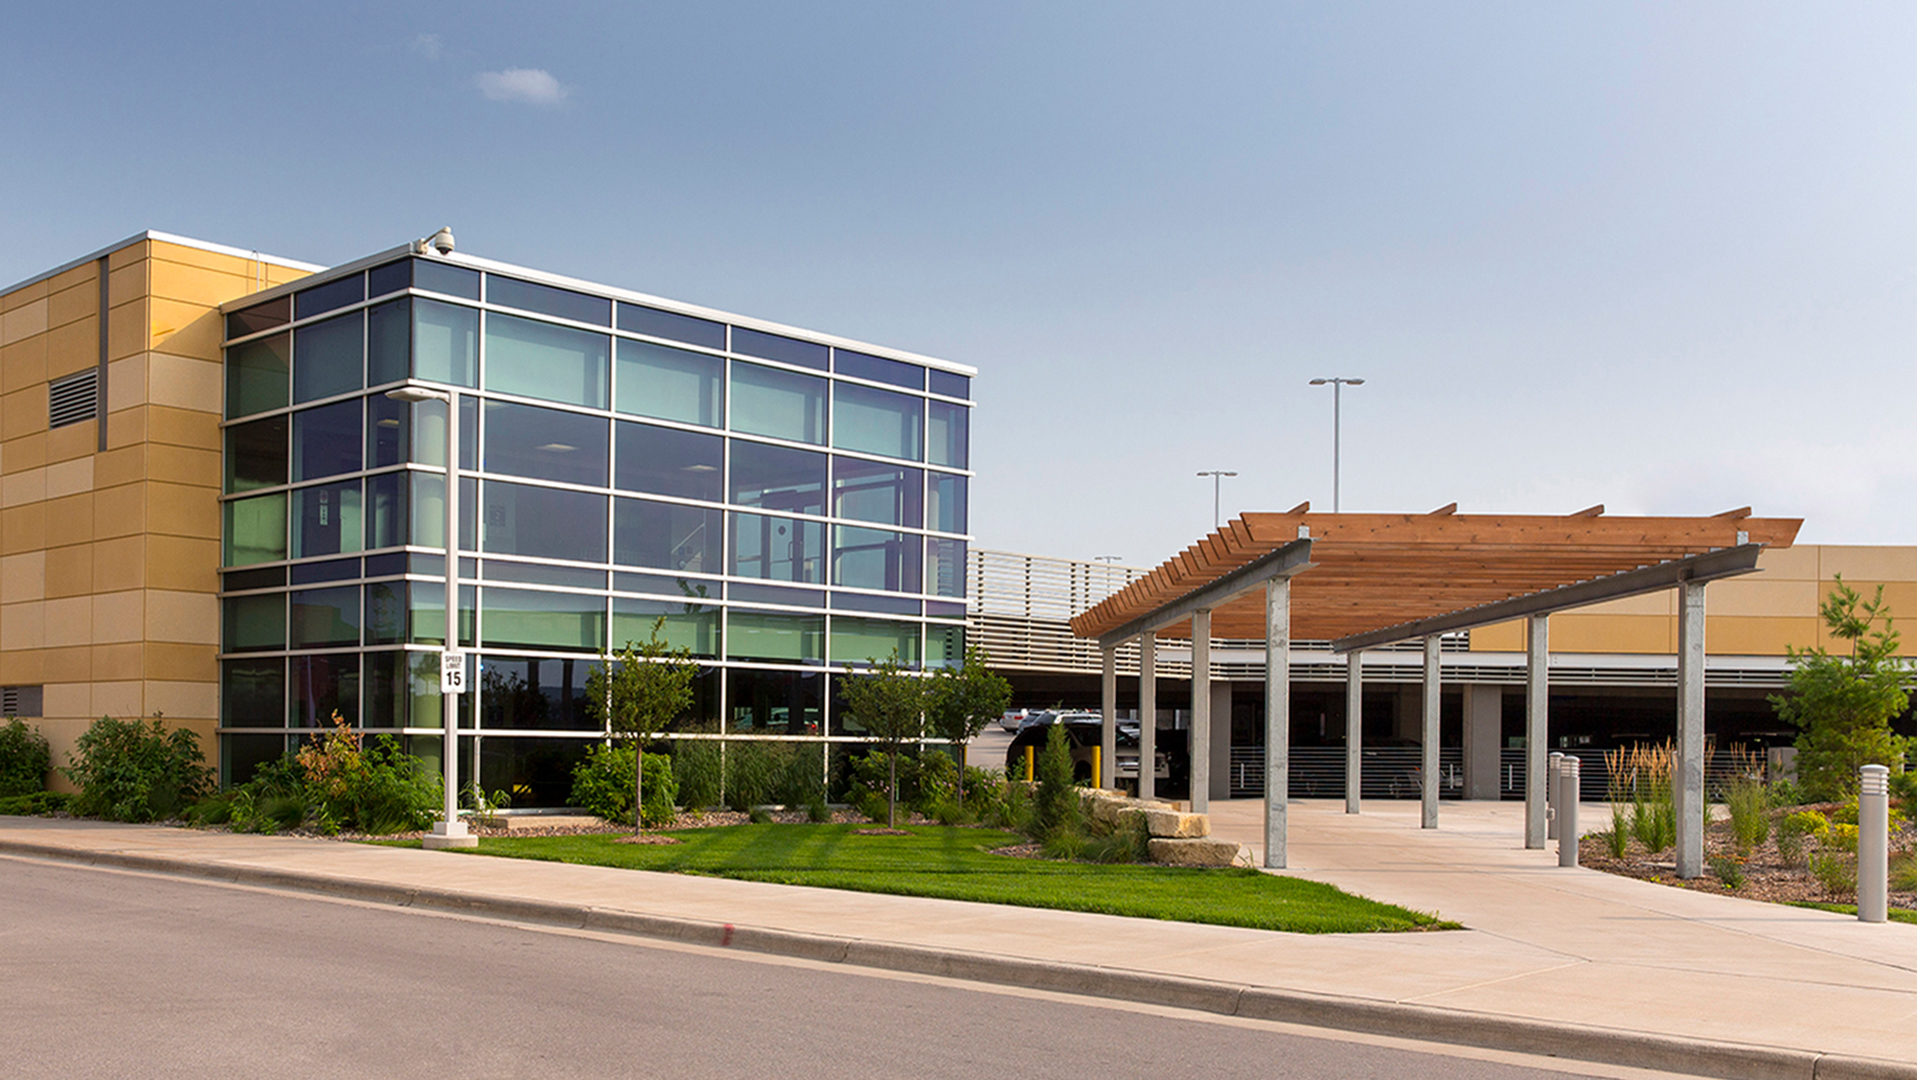 Gundersen Healthcare System Hospital Parking Ramp Exterior Entrance View